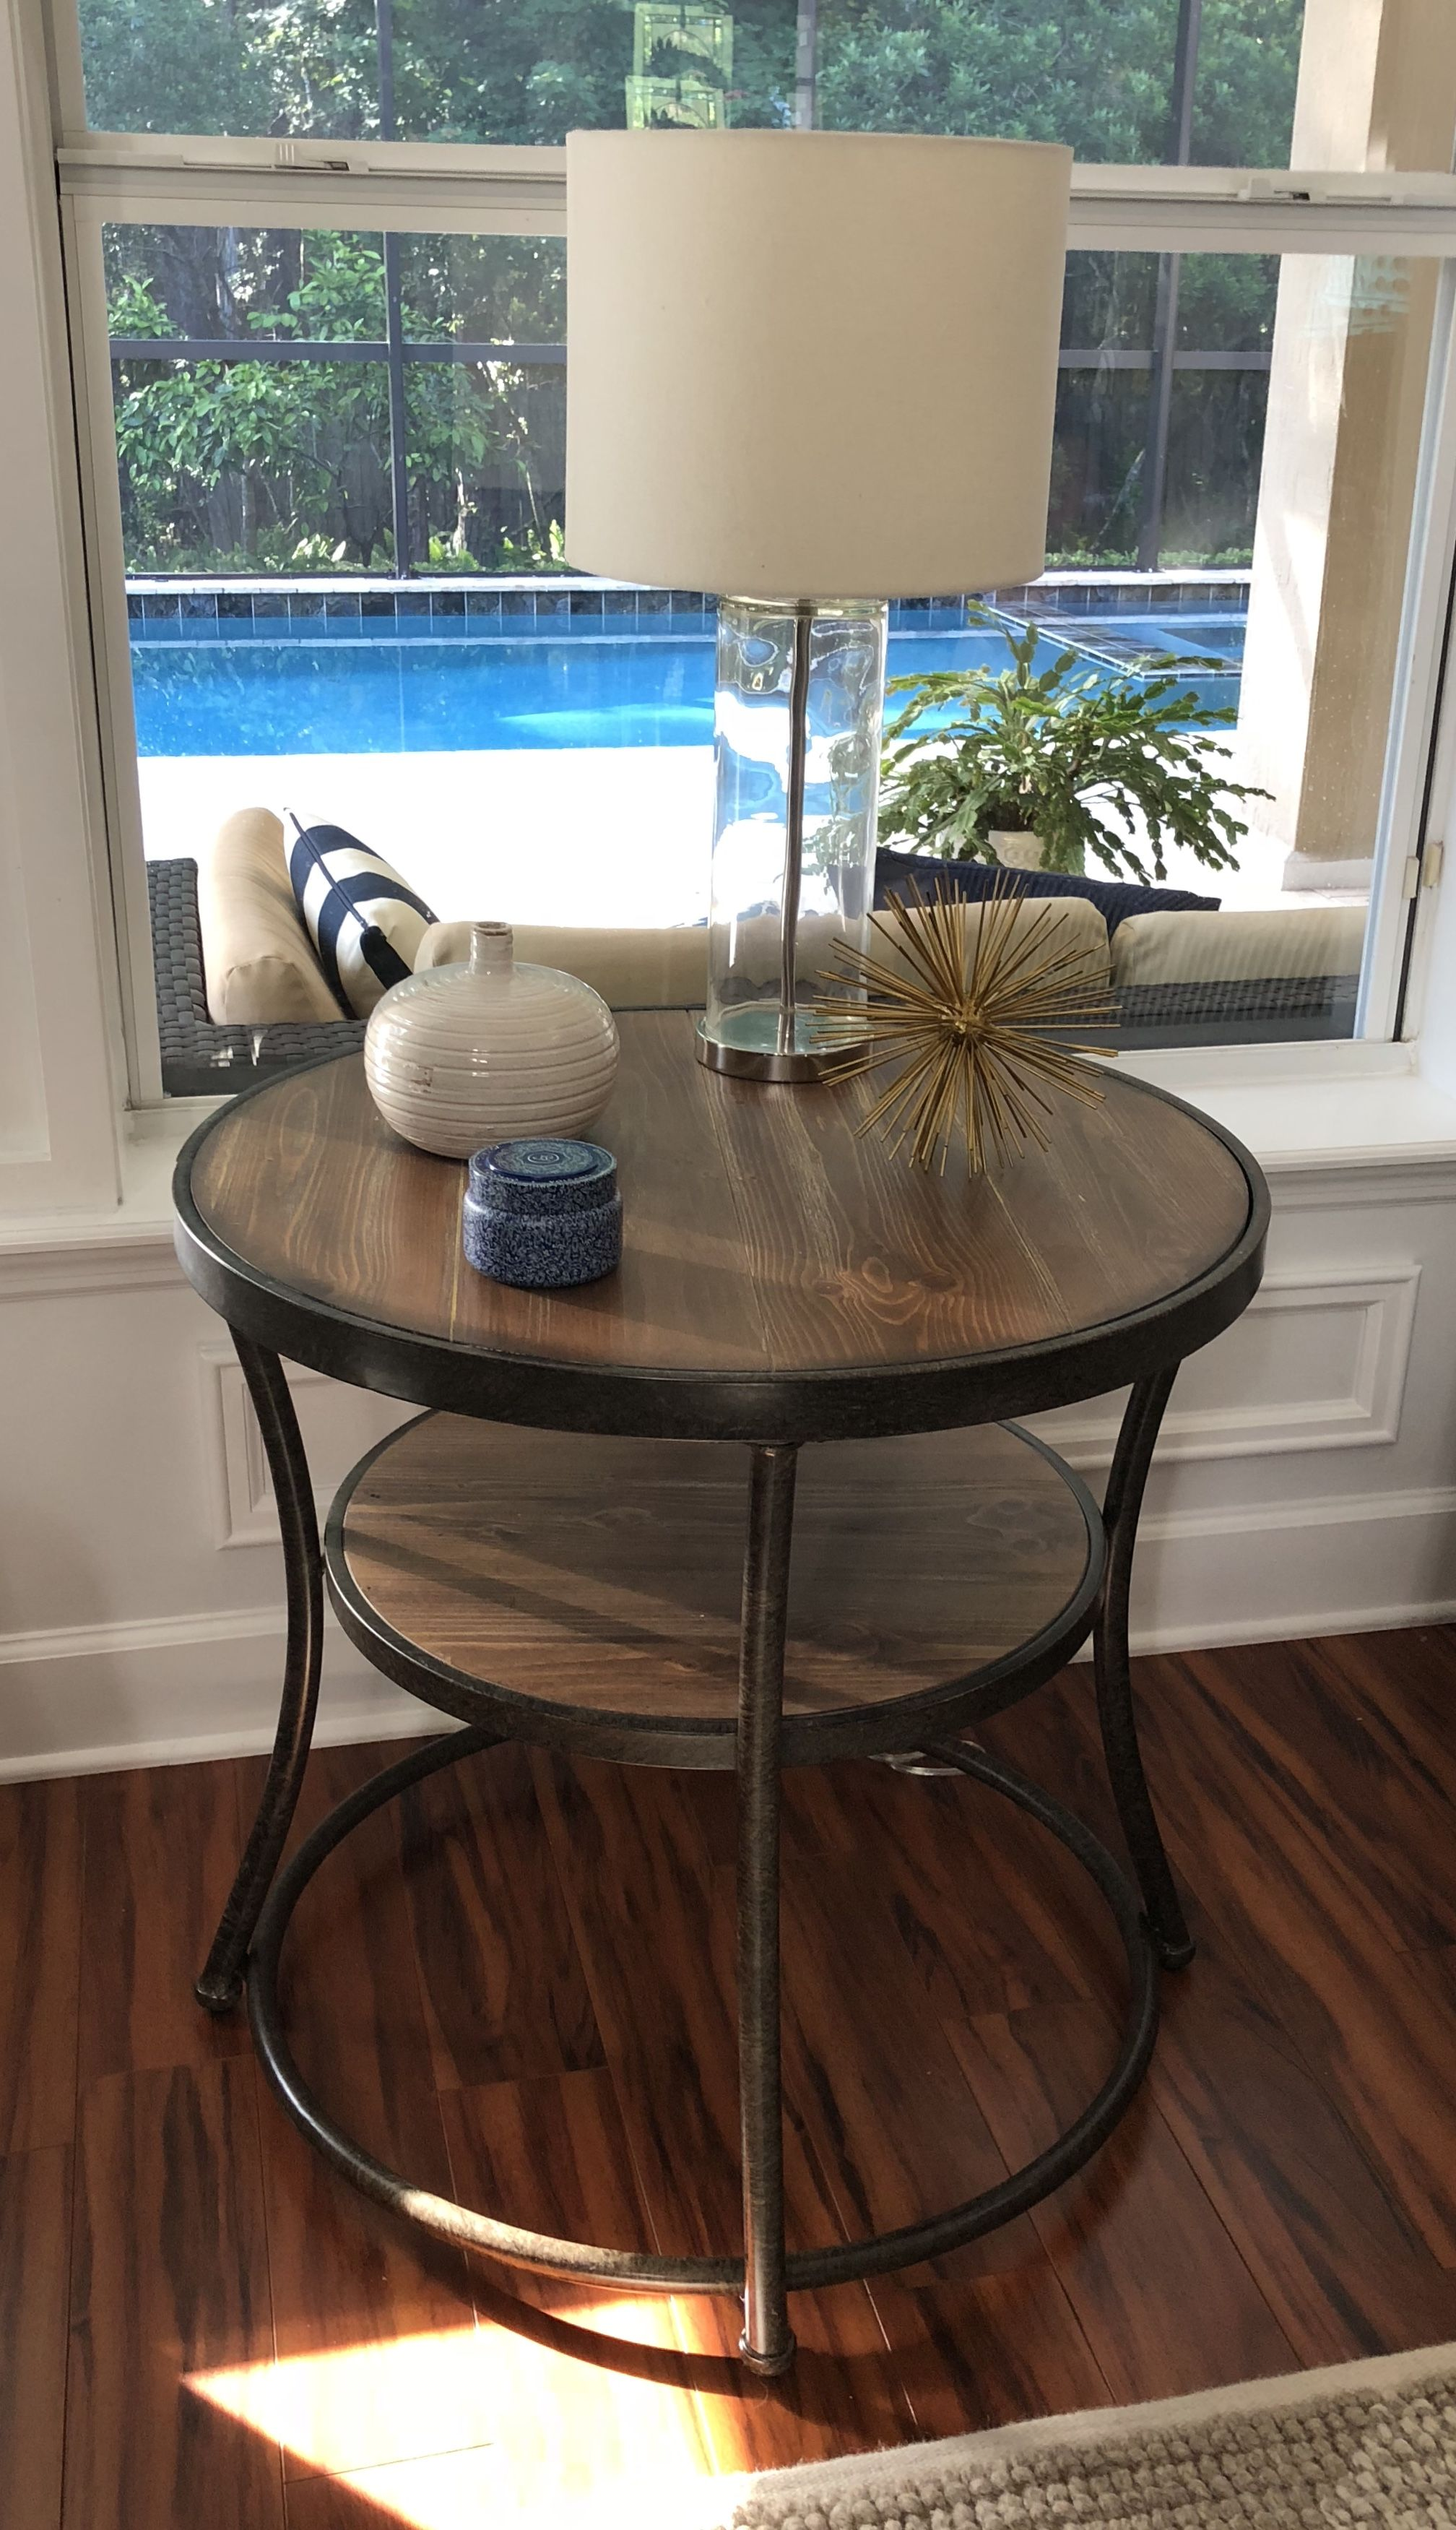 I Love This Round End Table Modern Rustic Mix With Wood And Metal